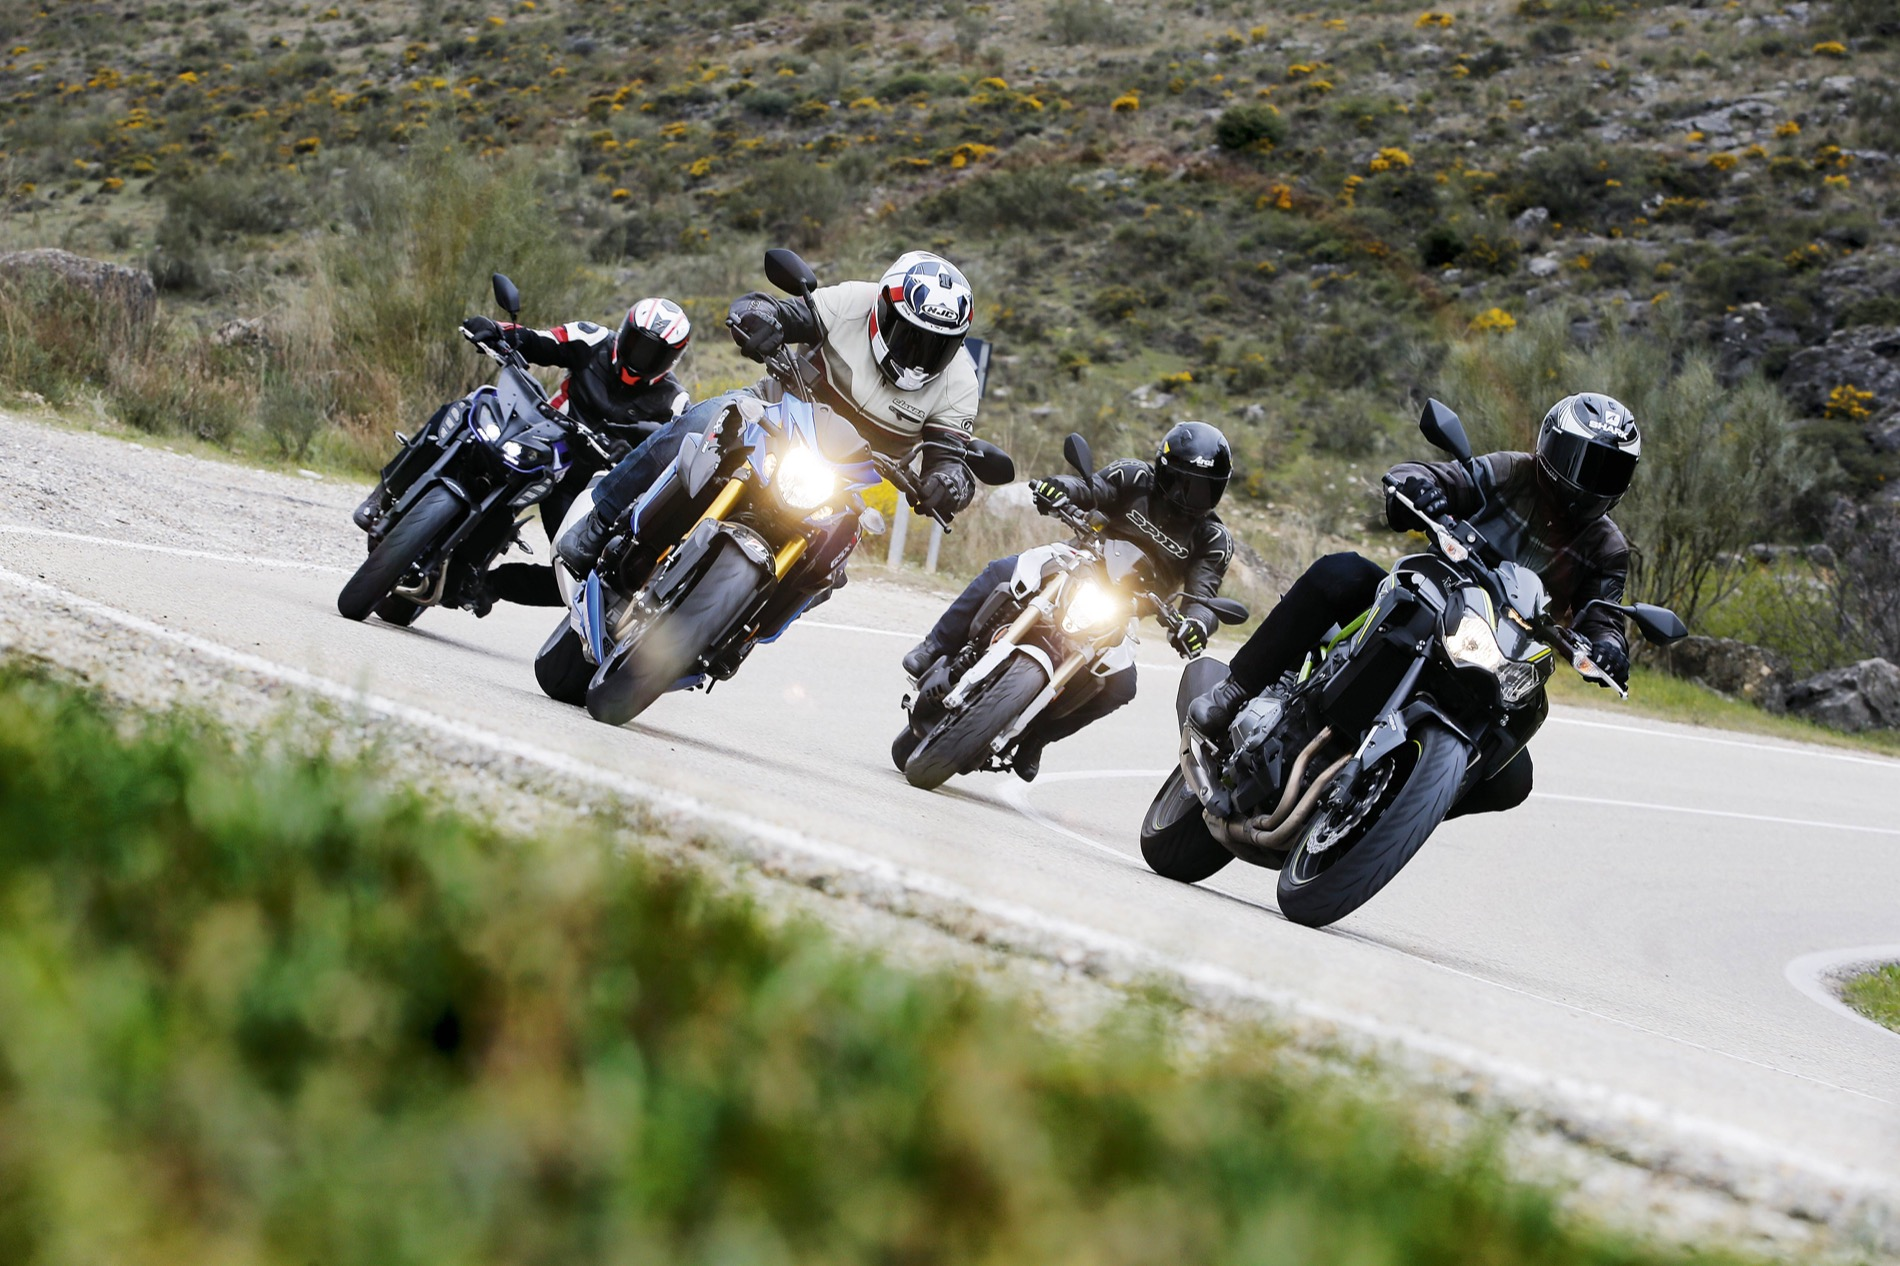 Comparativa naked: Yamaha MT09 vs Kawasaki Z900 vs Suzuki GSX-S 750 vs BMW F 800 R